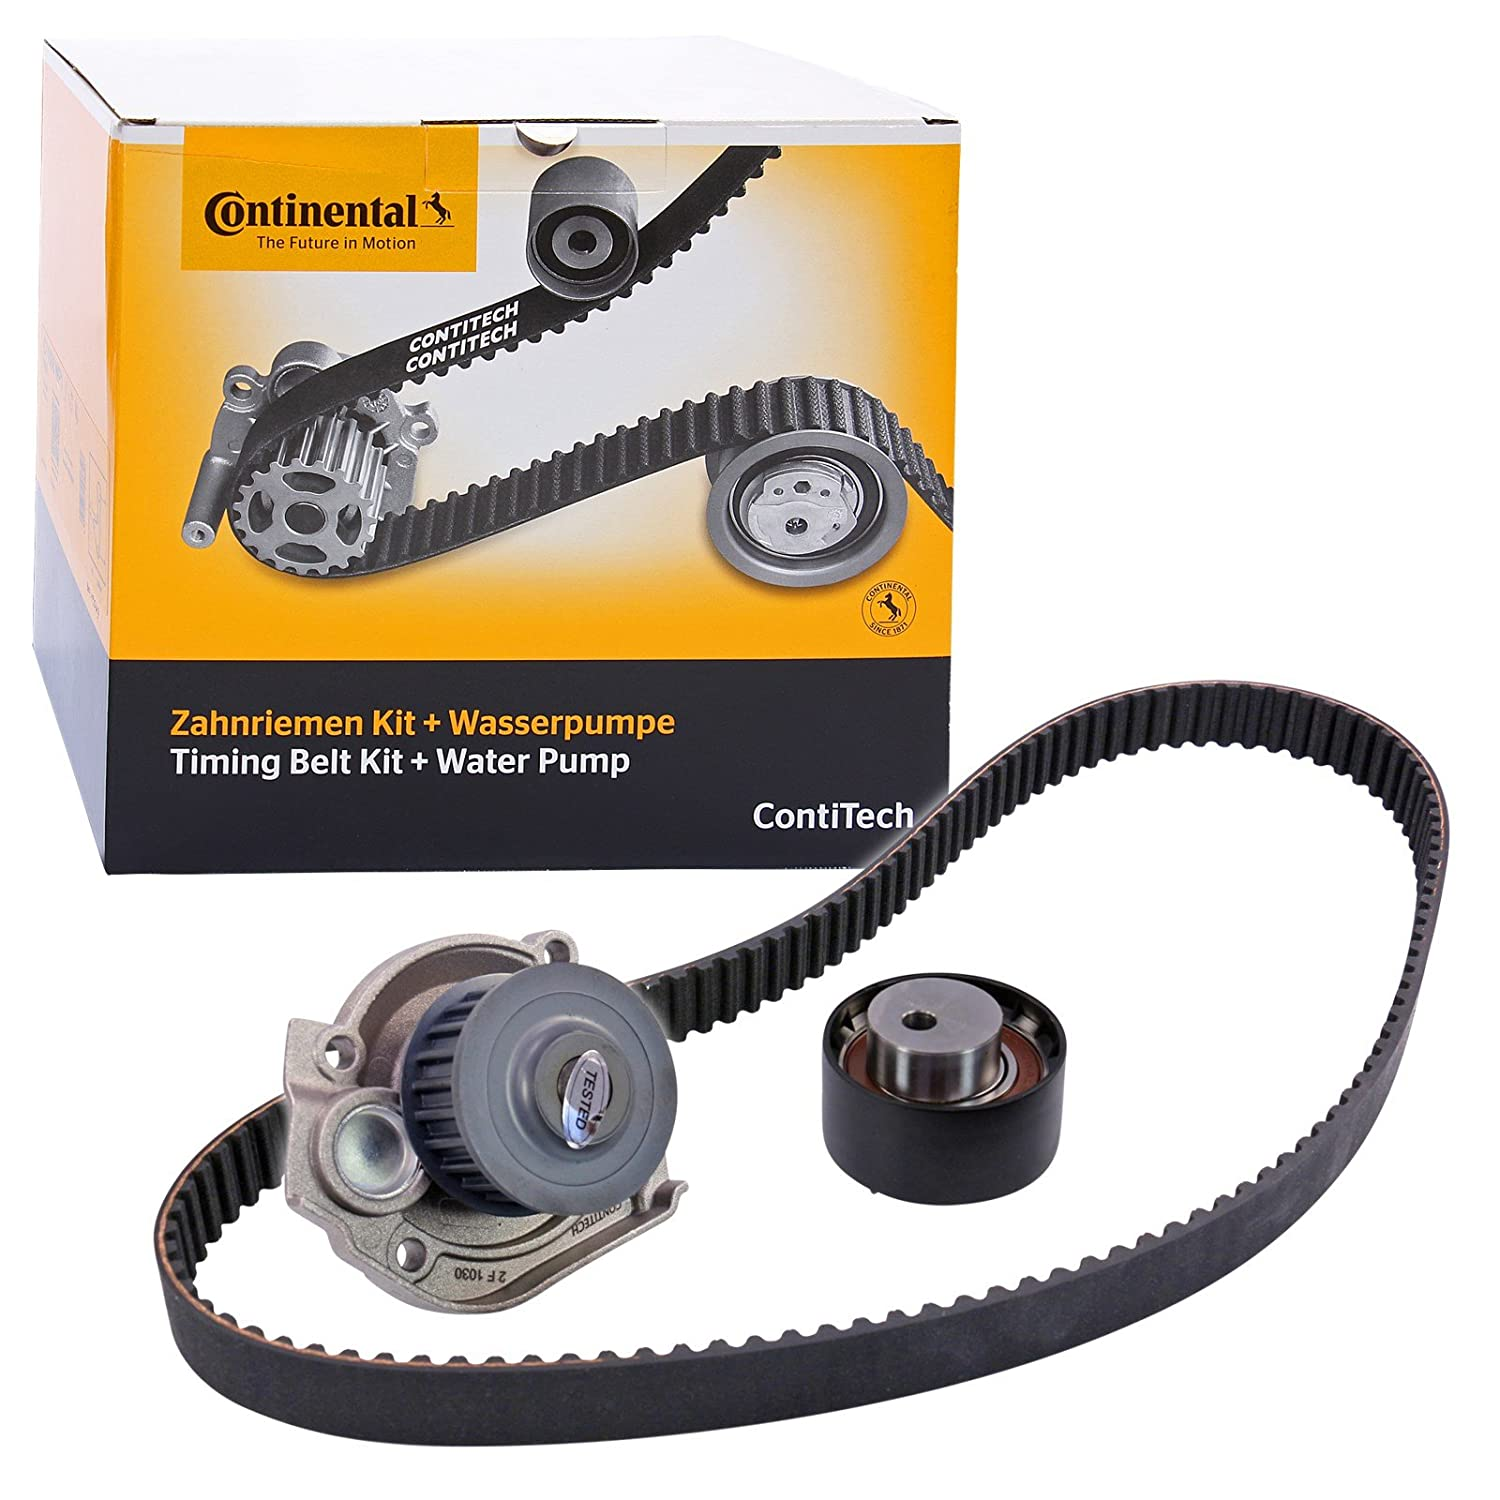 Contitech Ct1049wp1 Water Pump Timing Belt Kit Amazonco Outer Cover Car Motorbike